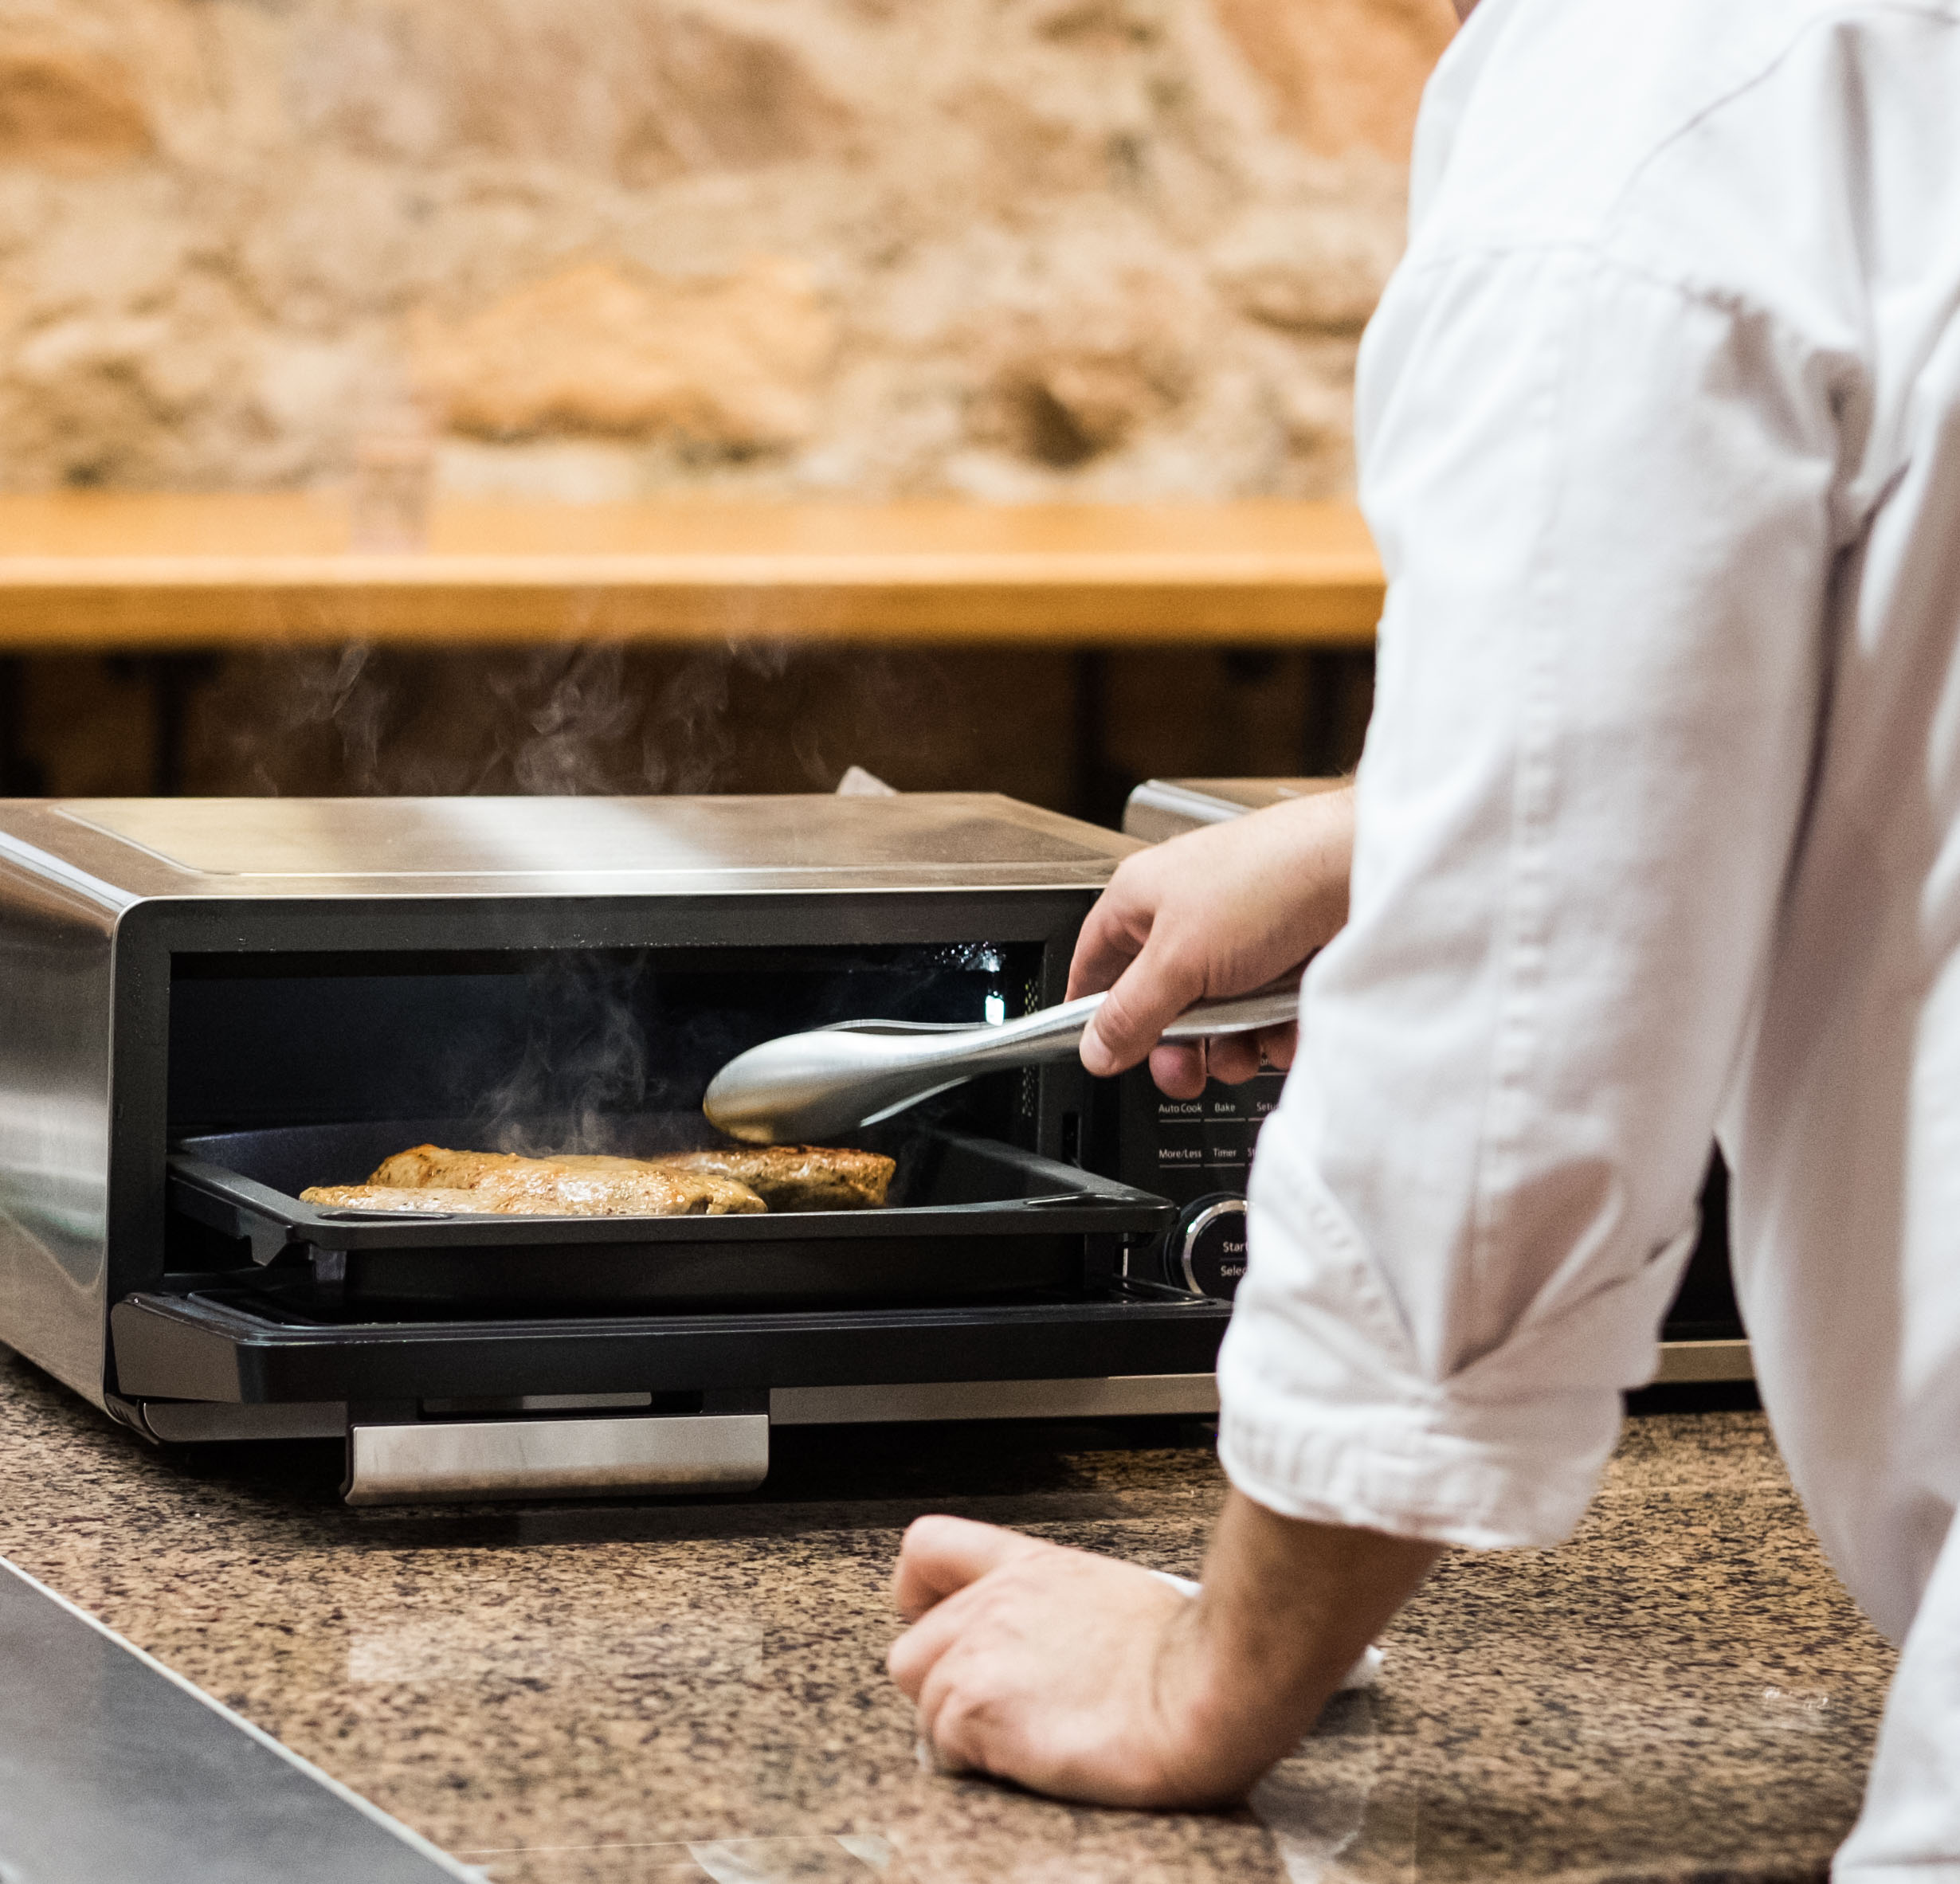 panasonic-countertop-induction-oven-review-6